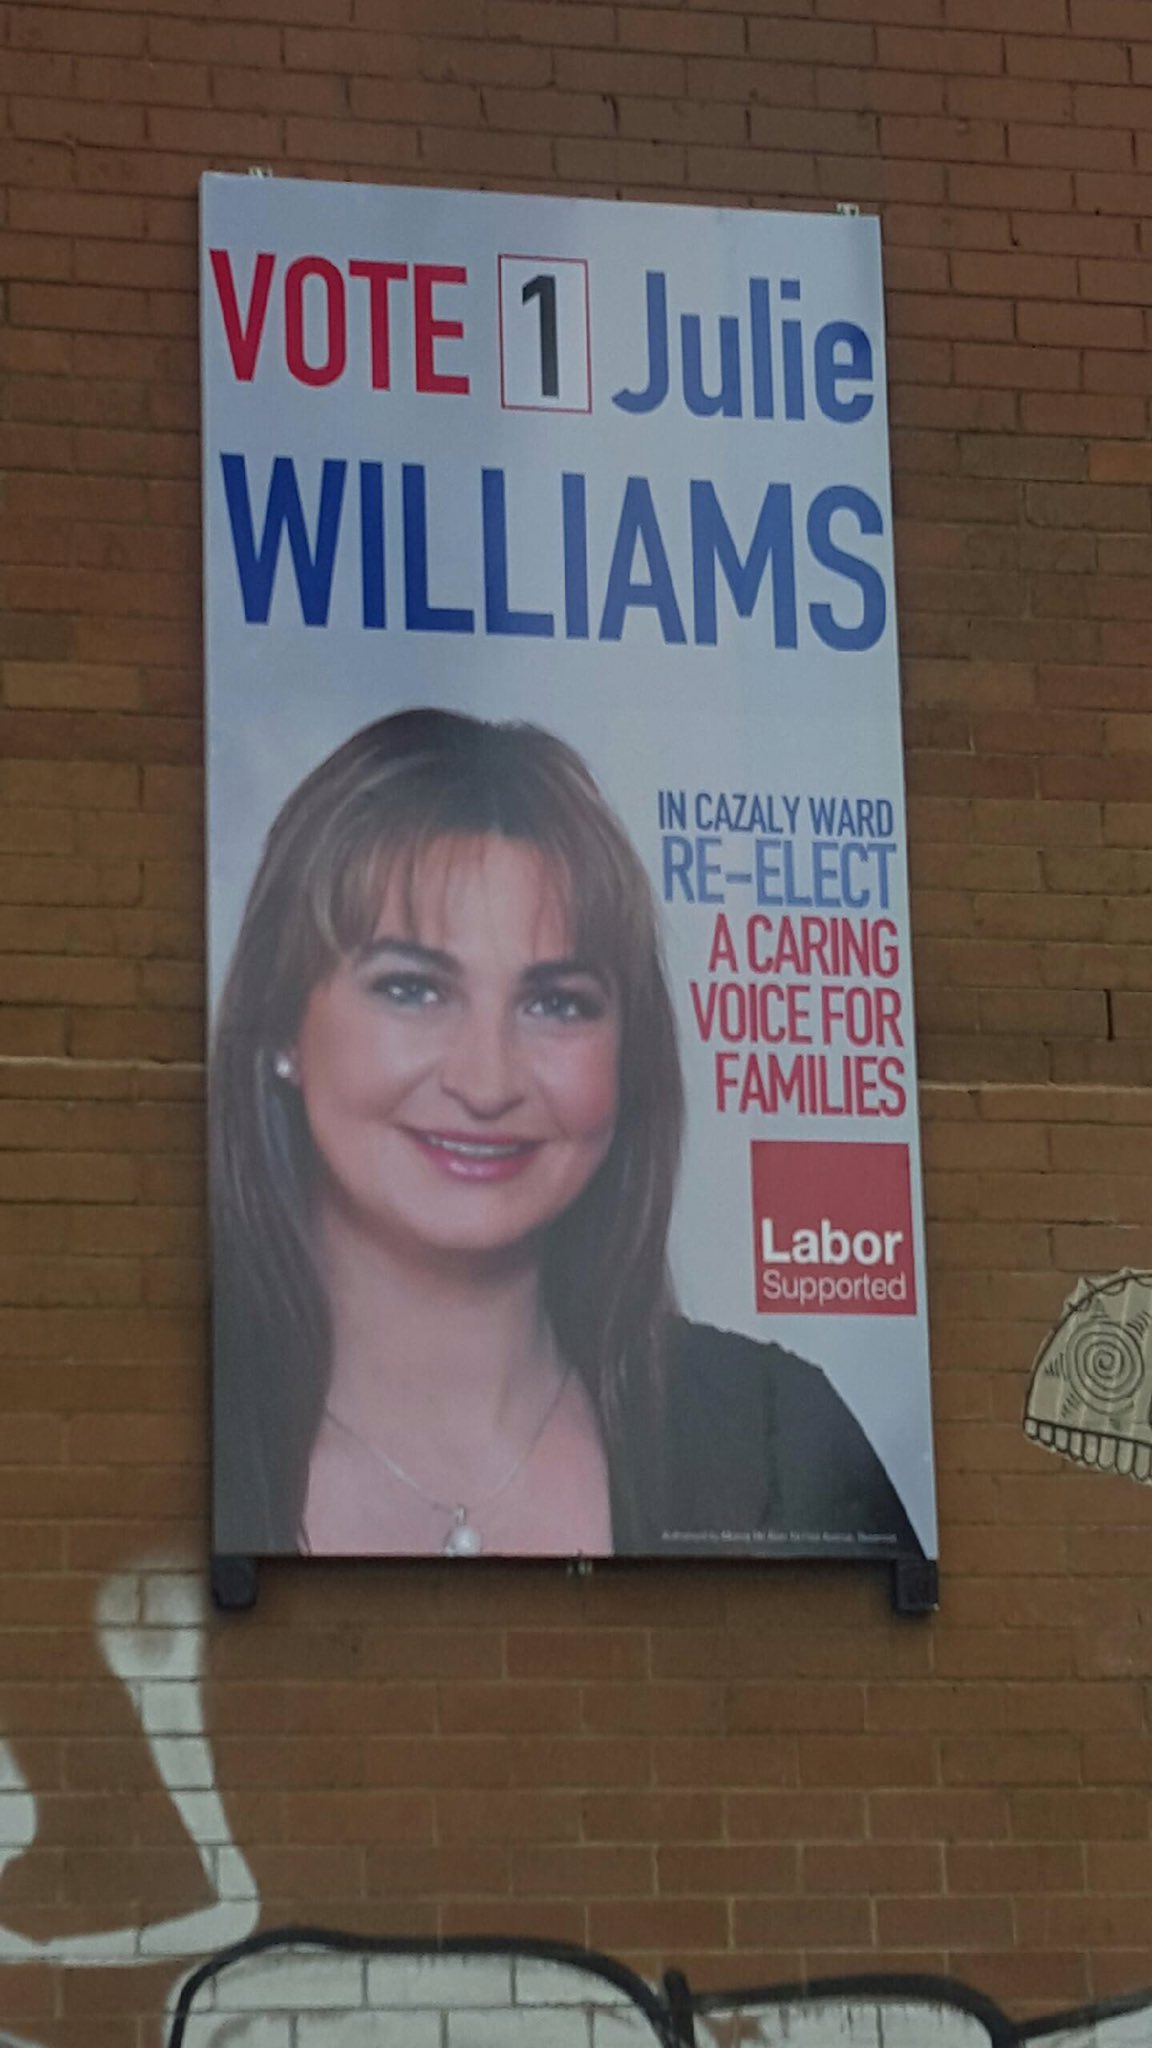 David Feeney On Twitter Go Darebin Labor And Julie Williams A Caring Voice For Families Cityofdarebin Labor Campaign In Cazaly Ward Is Revving Up Https T Co 6yweqlszmf